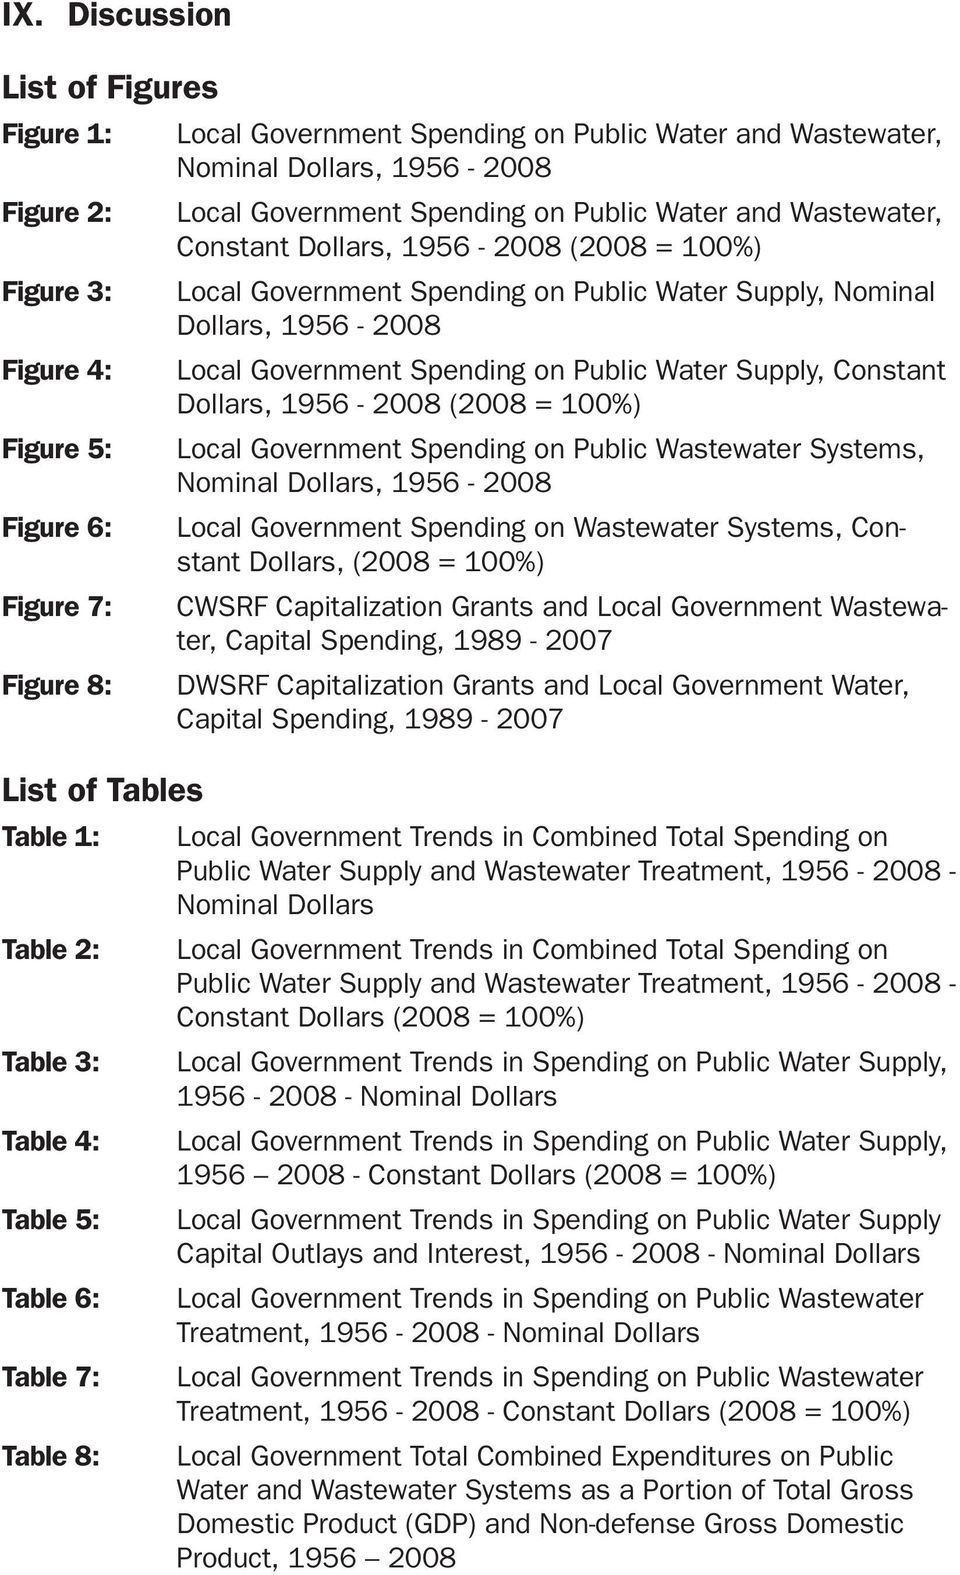 Dollars, 1956-2008 (2008 = 100%) Figure 5: Local Government Spending on Public Wastewater Systems, Nominal Dollars, 1956-2008 Figure 6: Local Government Spending on Wastewater Systems, Constant